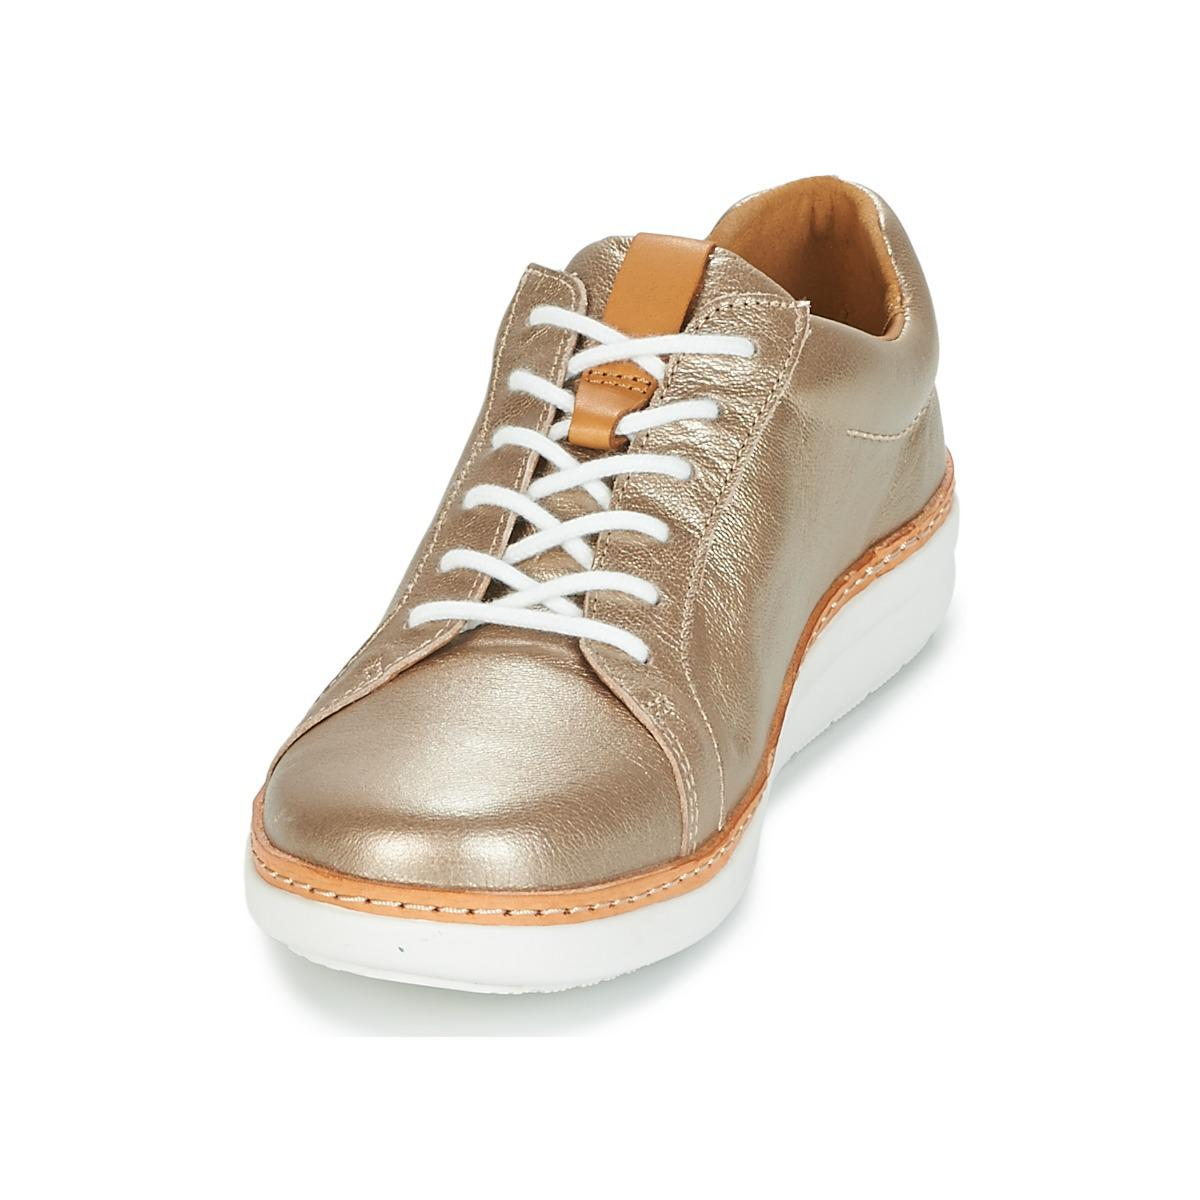 7326dcf2e93 Clarks  s Amberlee Rosa Low-top Sneakers in Metallic - Save 69% - Lyst